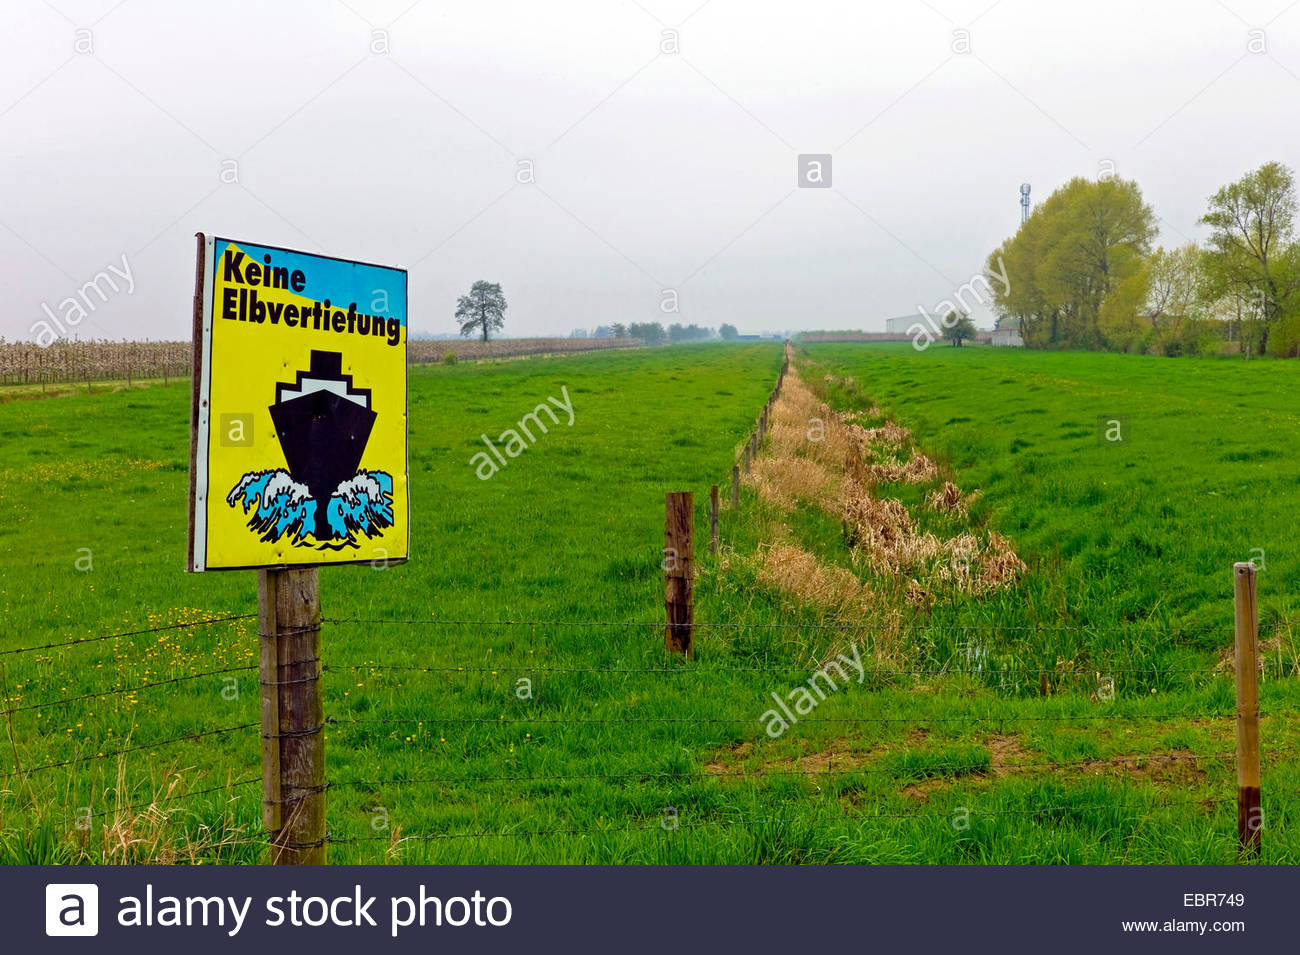 protest sign , Germany, Lower Saxony - Stock Image